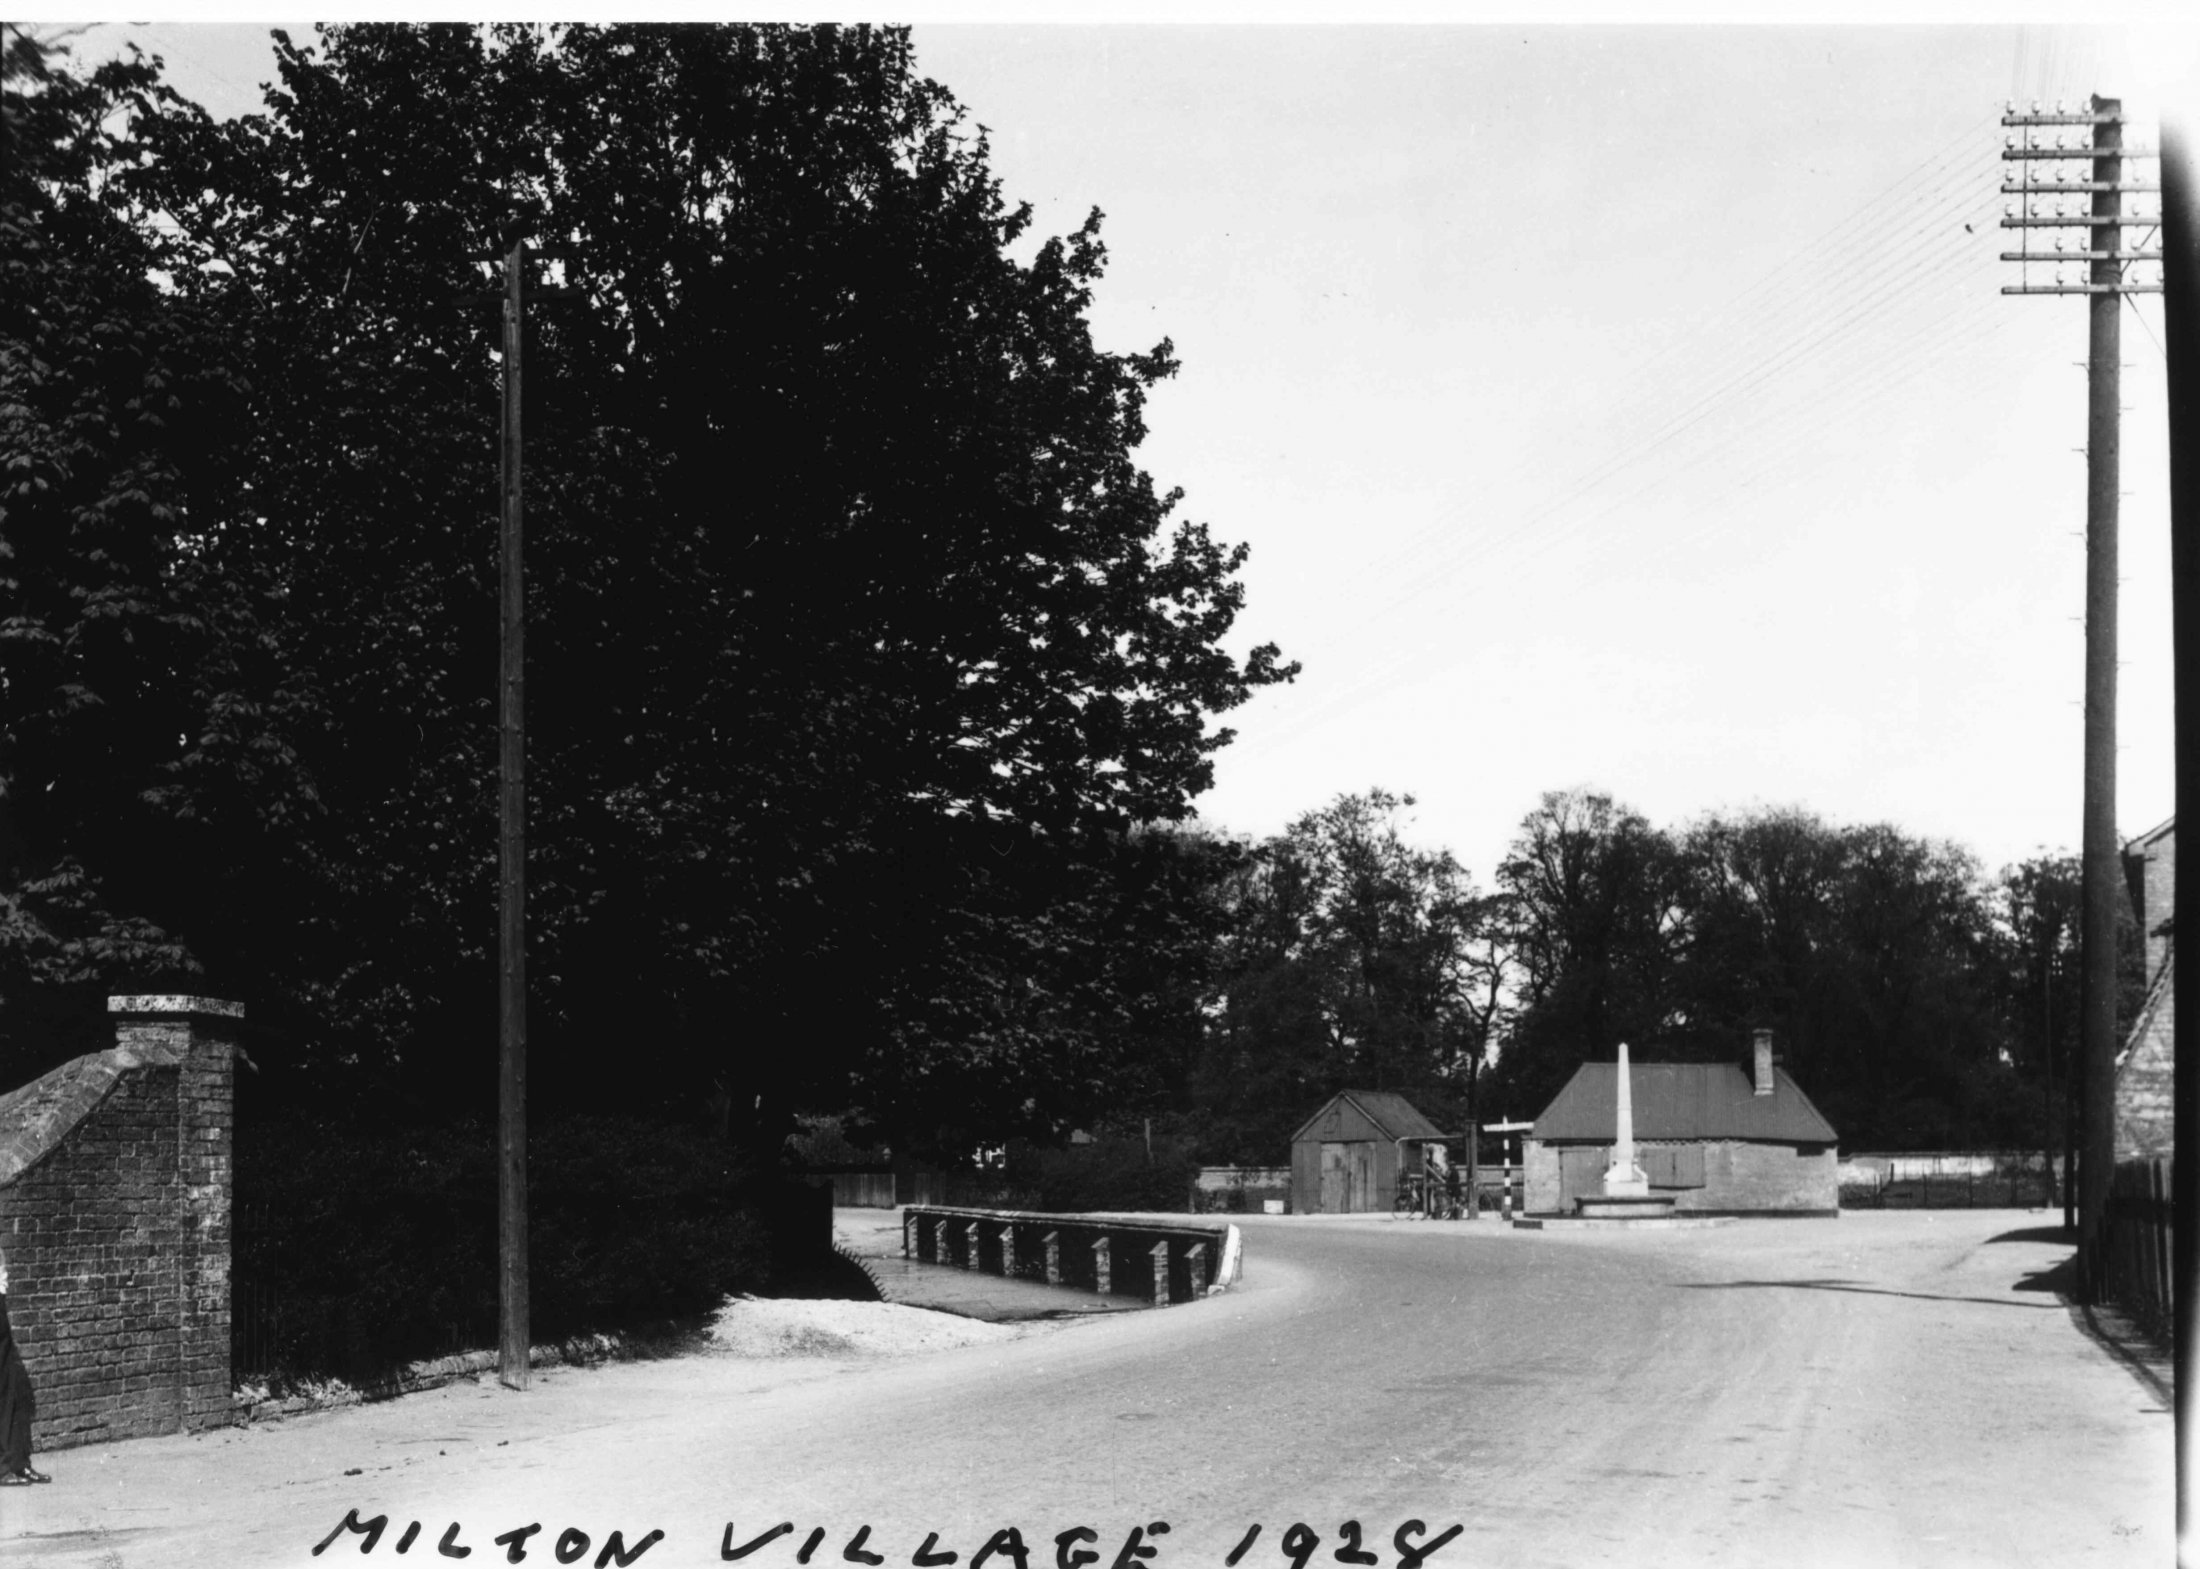 Milton Village With Pond 1928